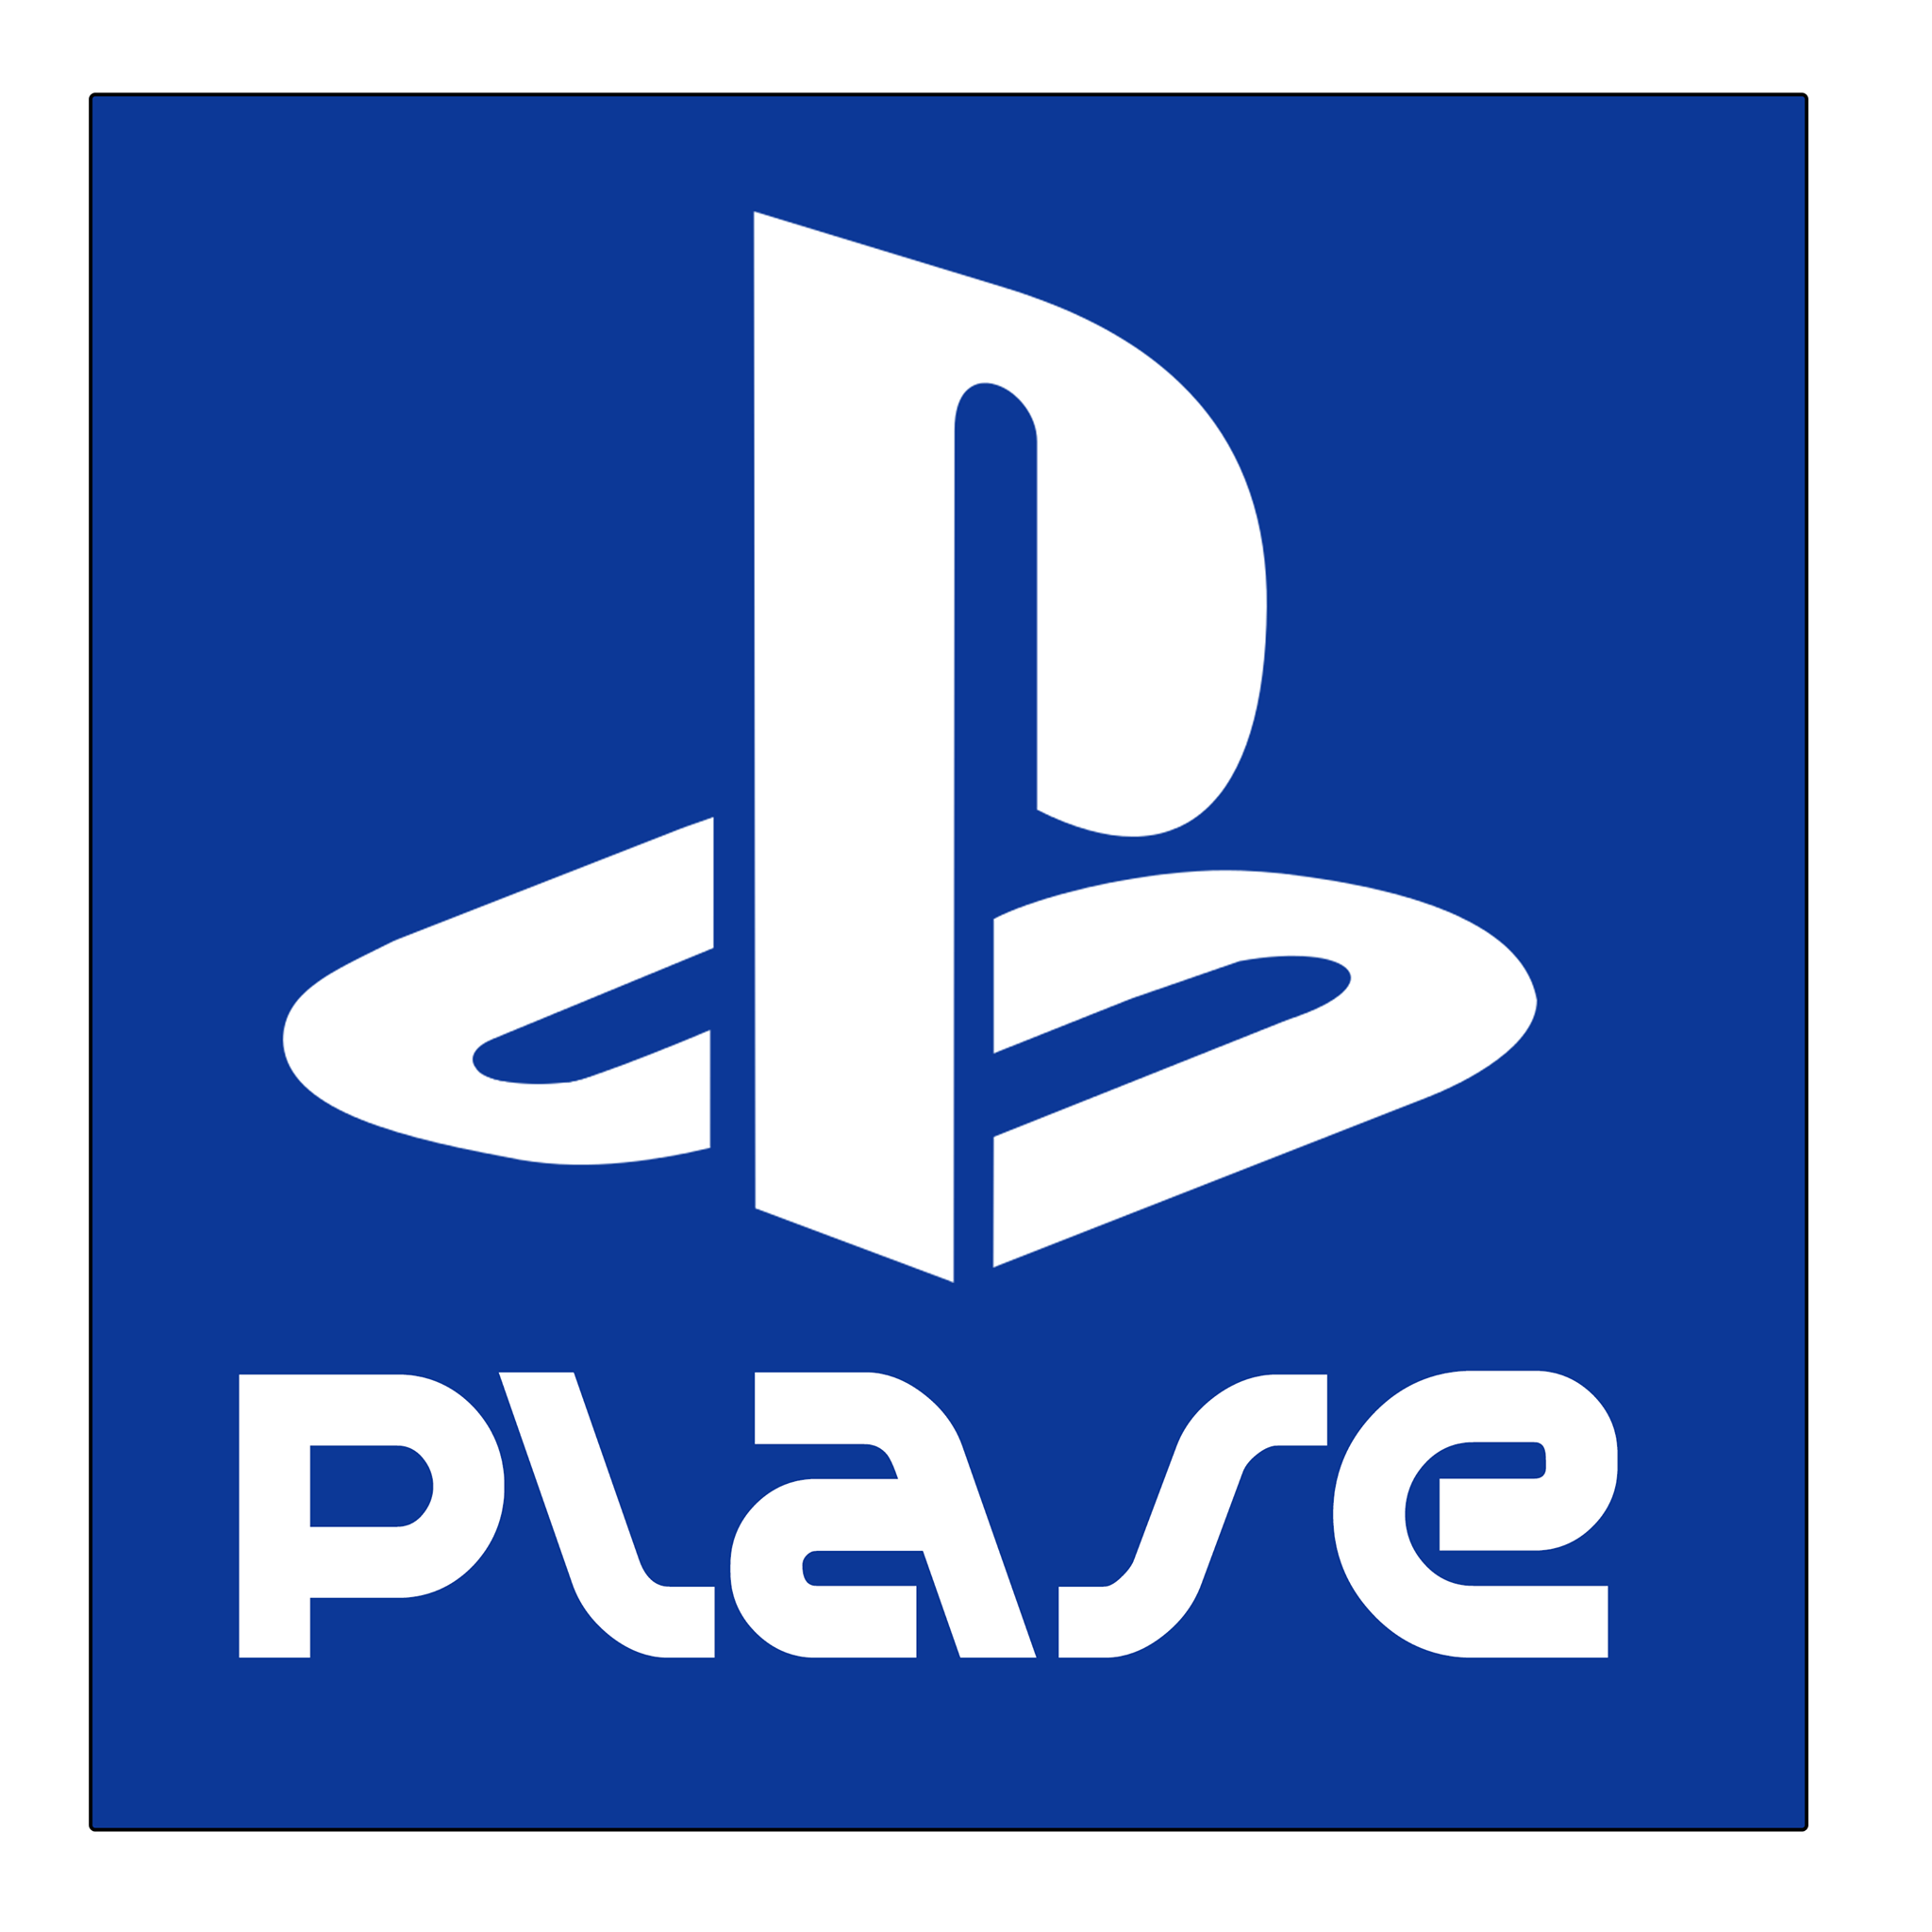 Plase Playstation